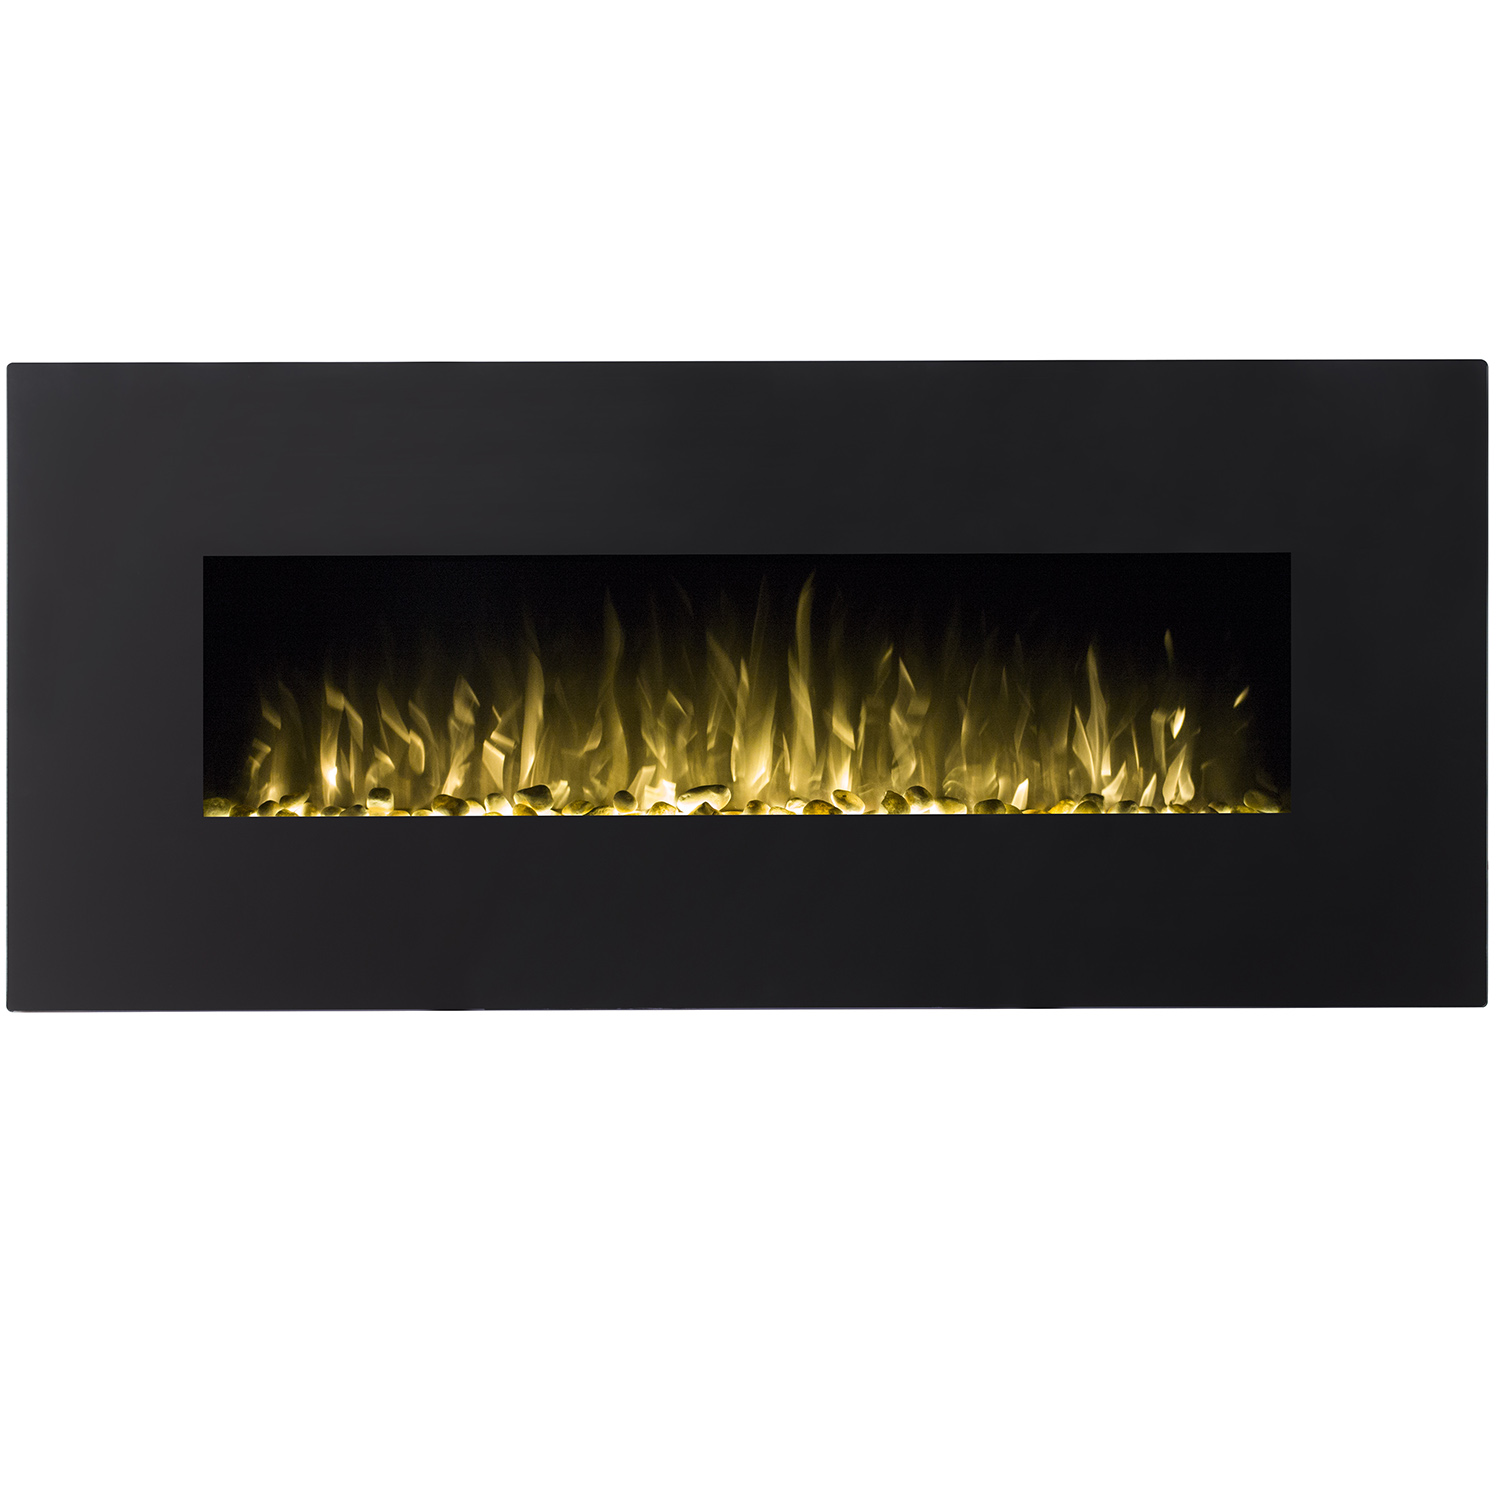 rigel 50 inch black ventless heater electric wall mounted